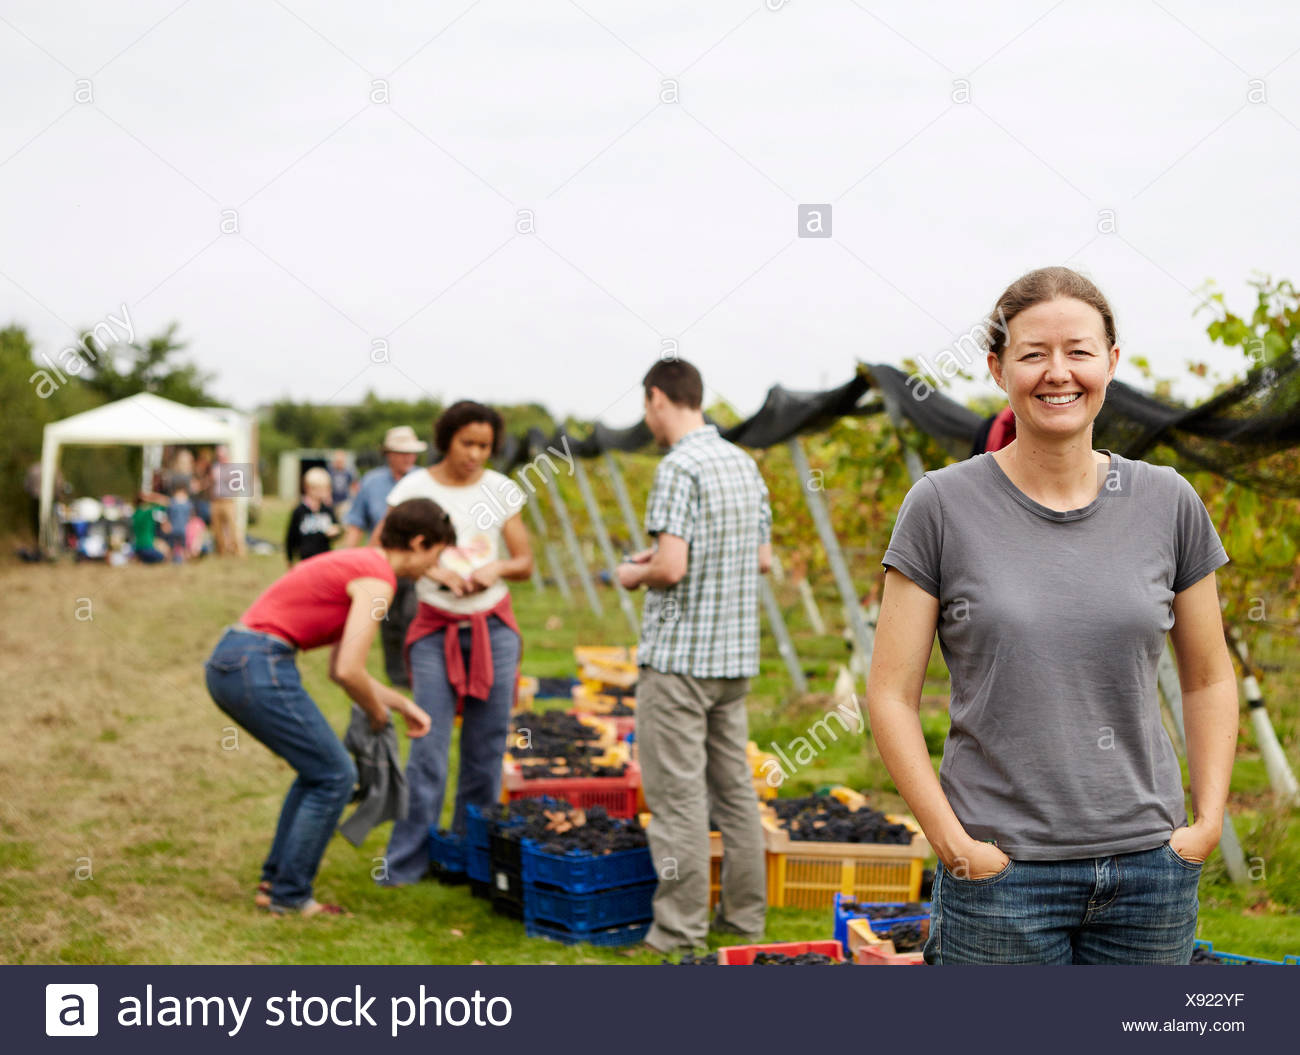 A group of young people, grape pickers, family and the founder of the vineyard celebrating the end of the picking. - Stock Image